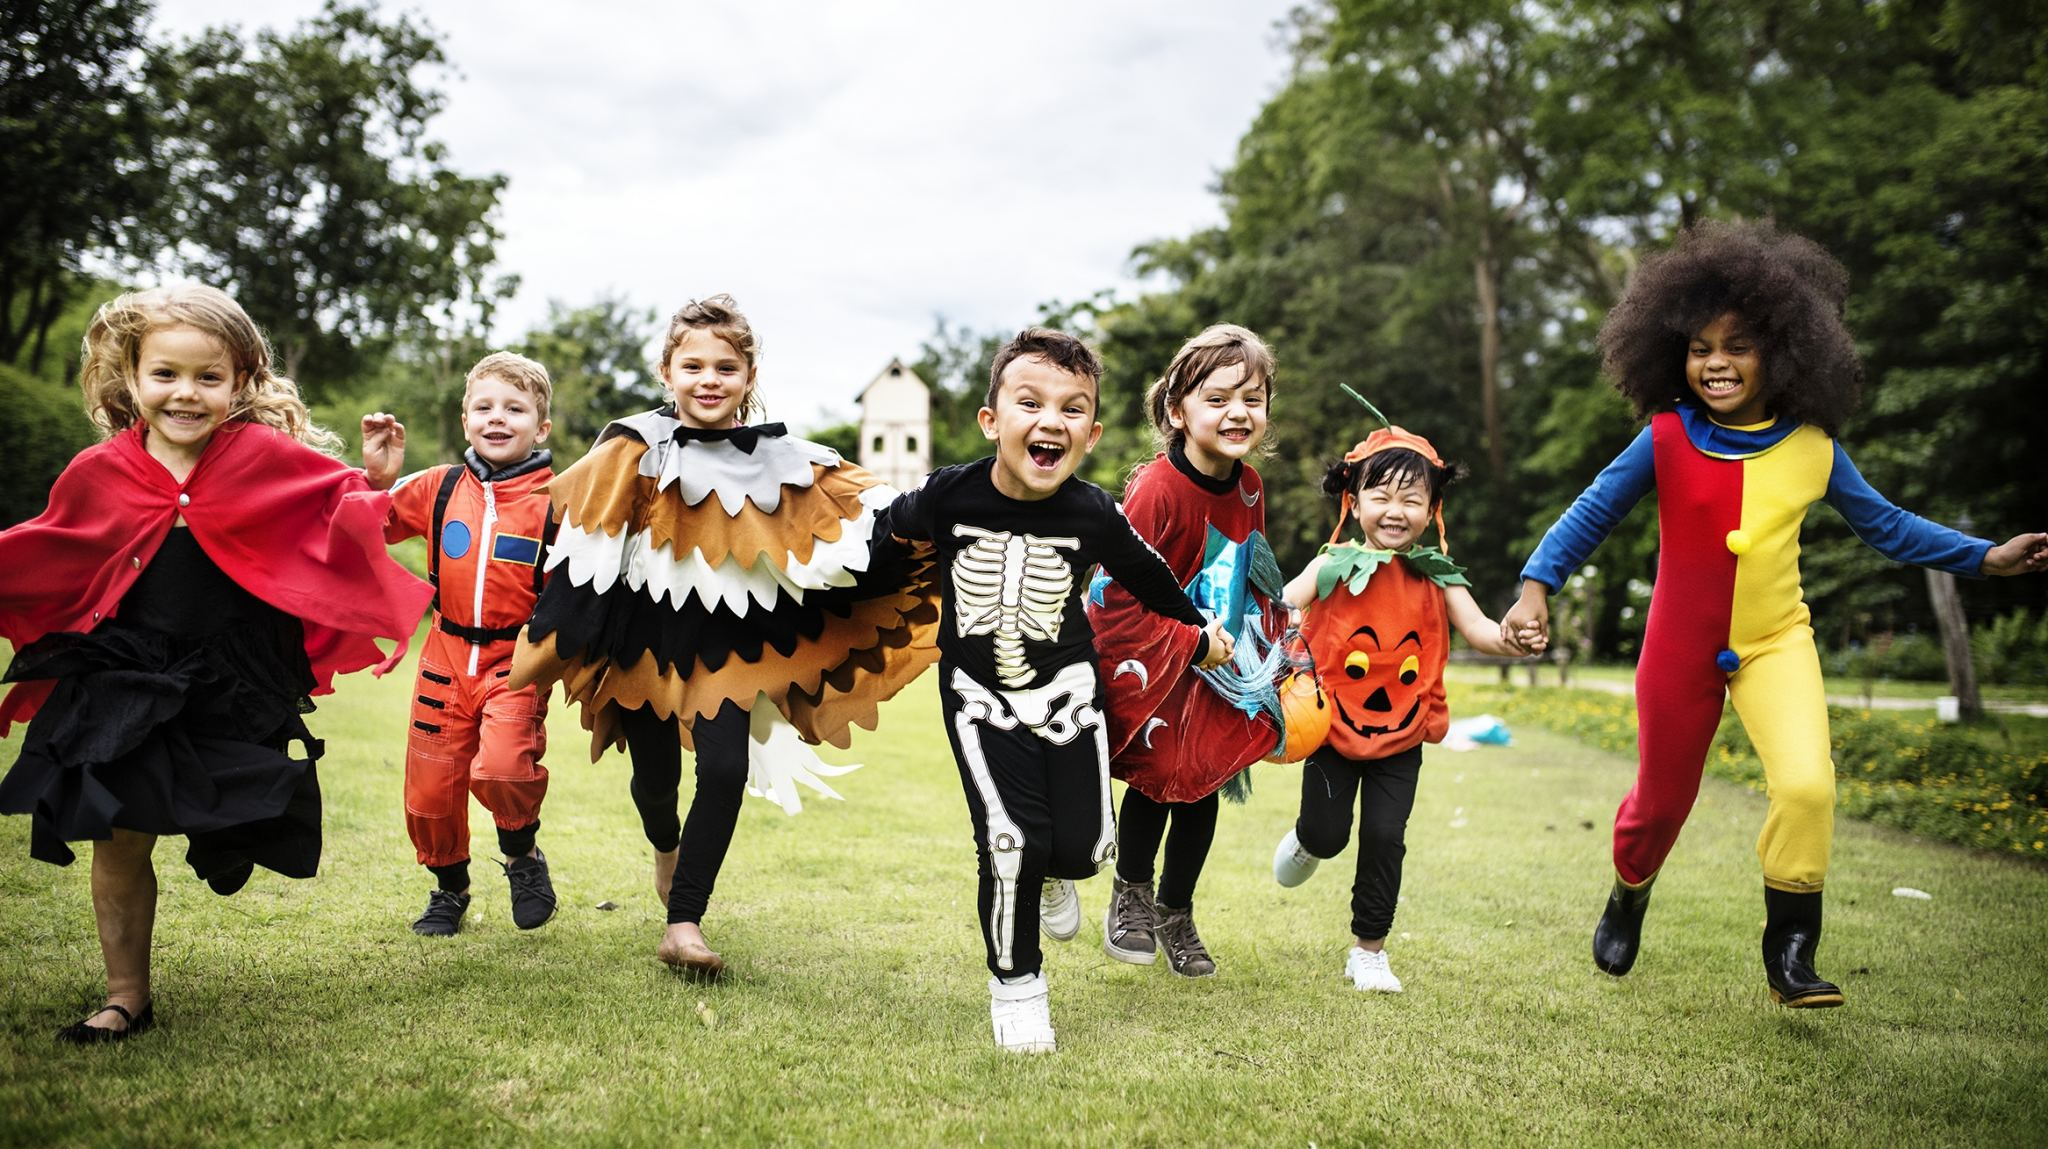 Large group of kids dressed up for Halloween